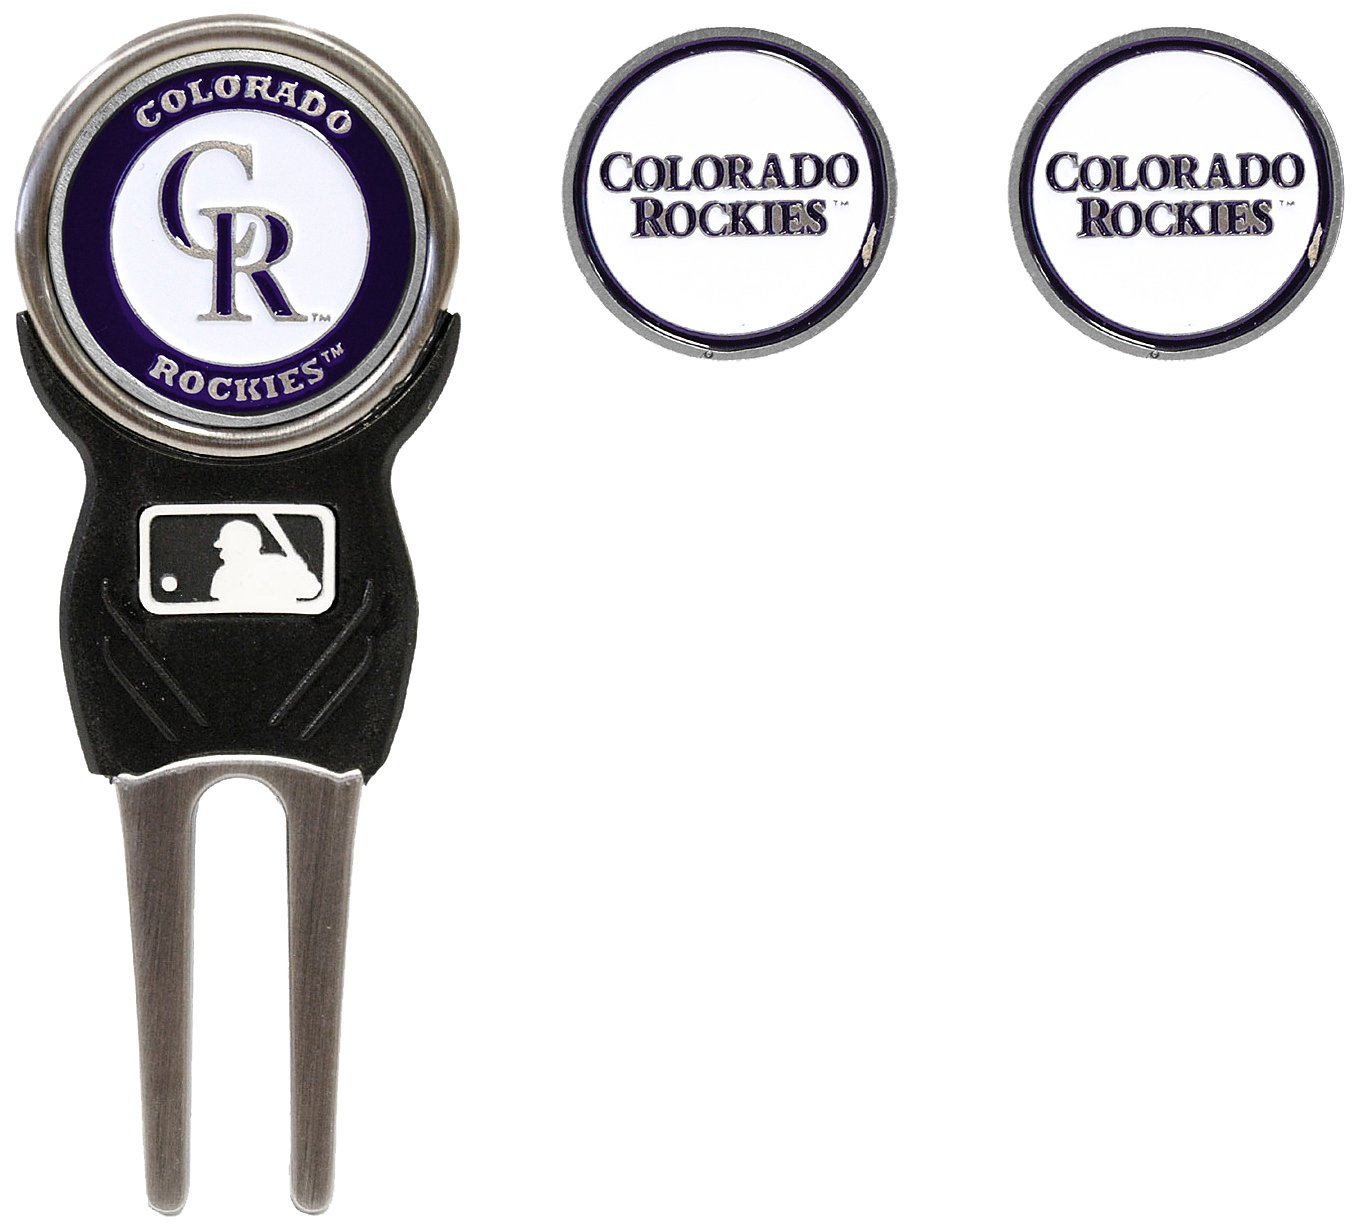 MLB Colorado Rockies Divot Tool Pack With 3 Golf Ball Markers by Team Golf (Image #1)